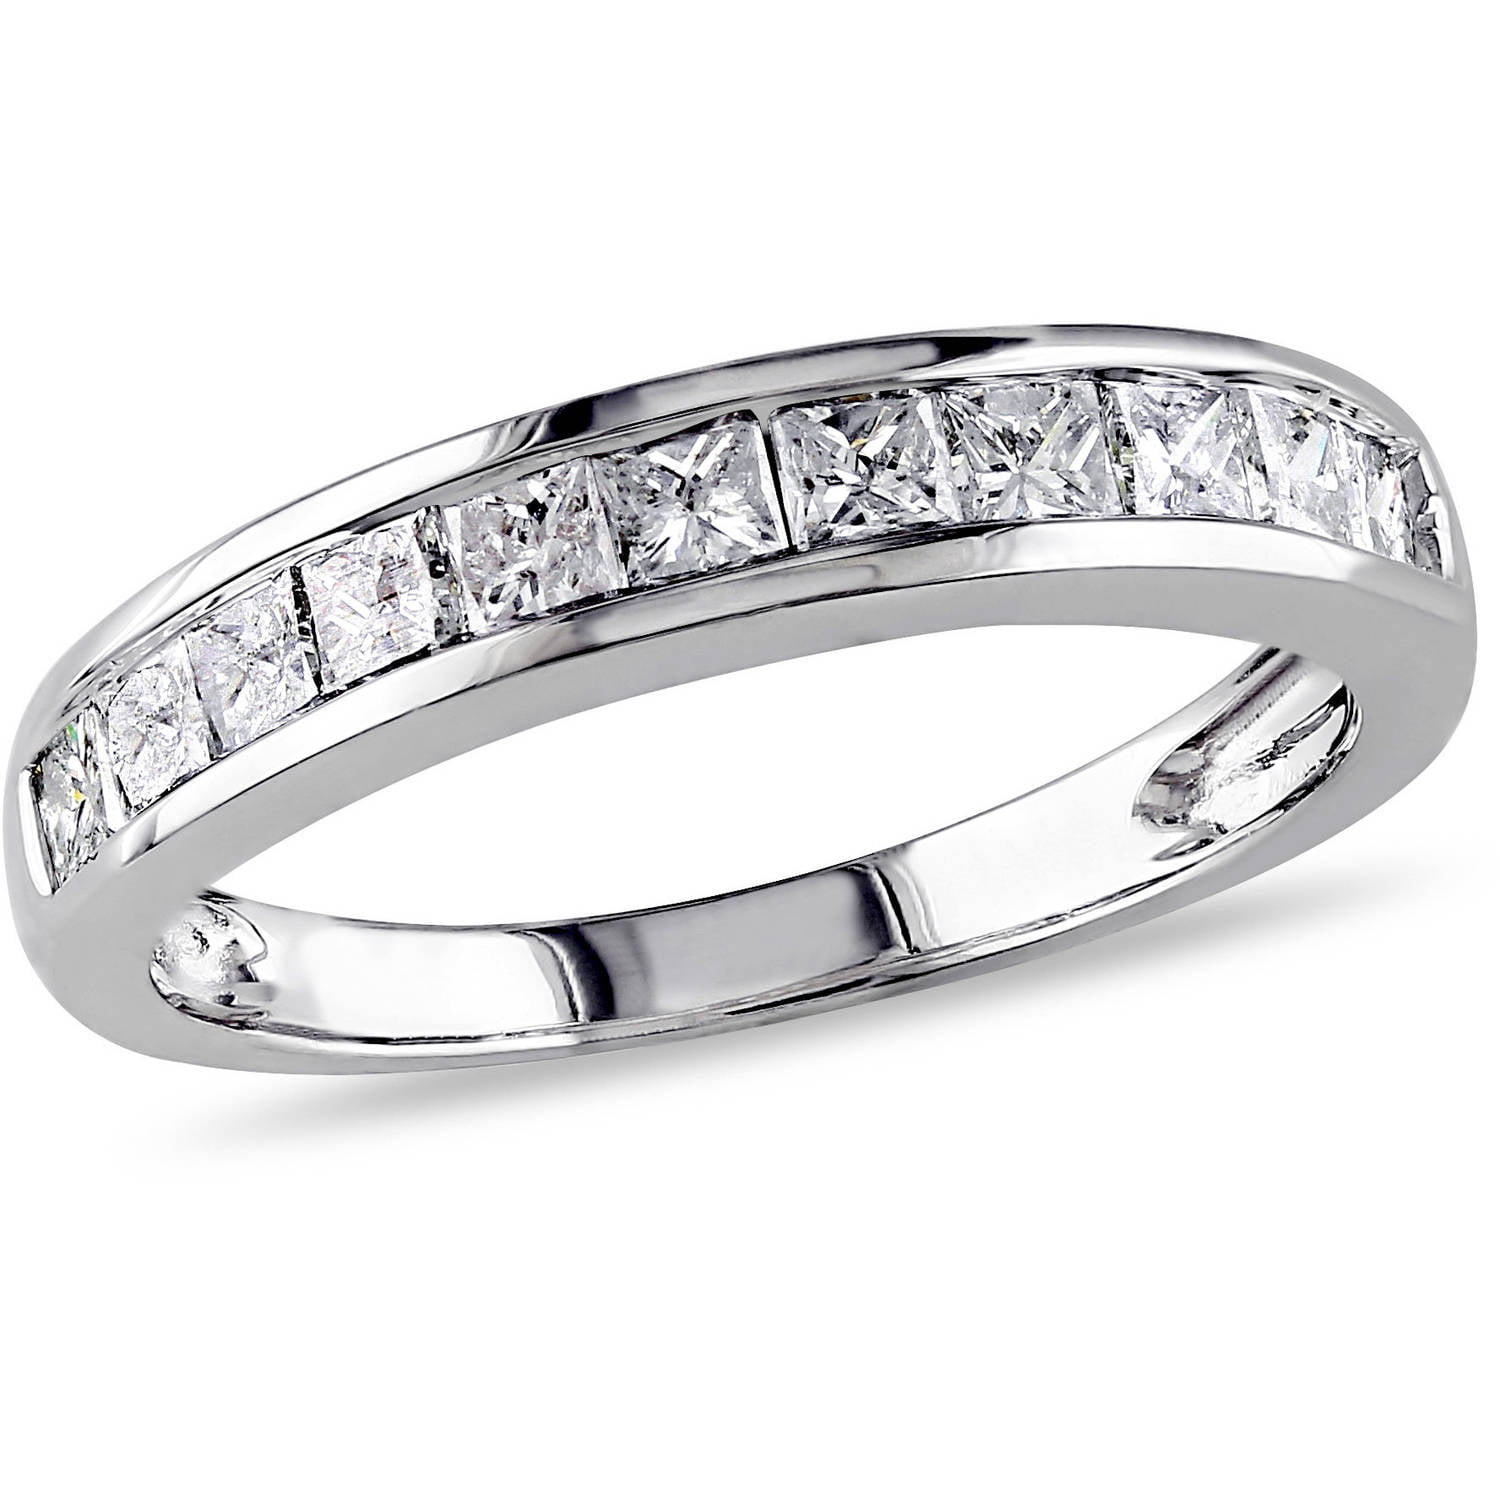 Miabella 3 4 Carat T.W. Princess-Cut Diamond 14kt White Gold Wedding Band by Generic